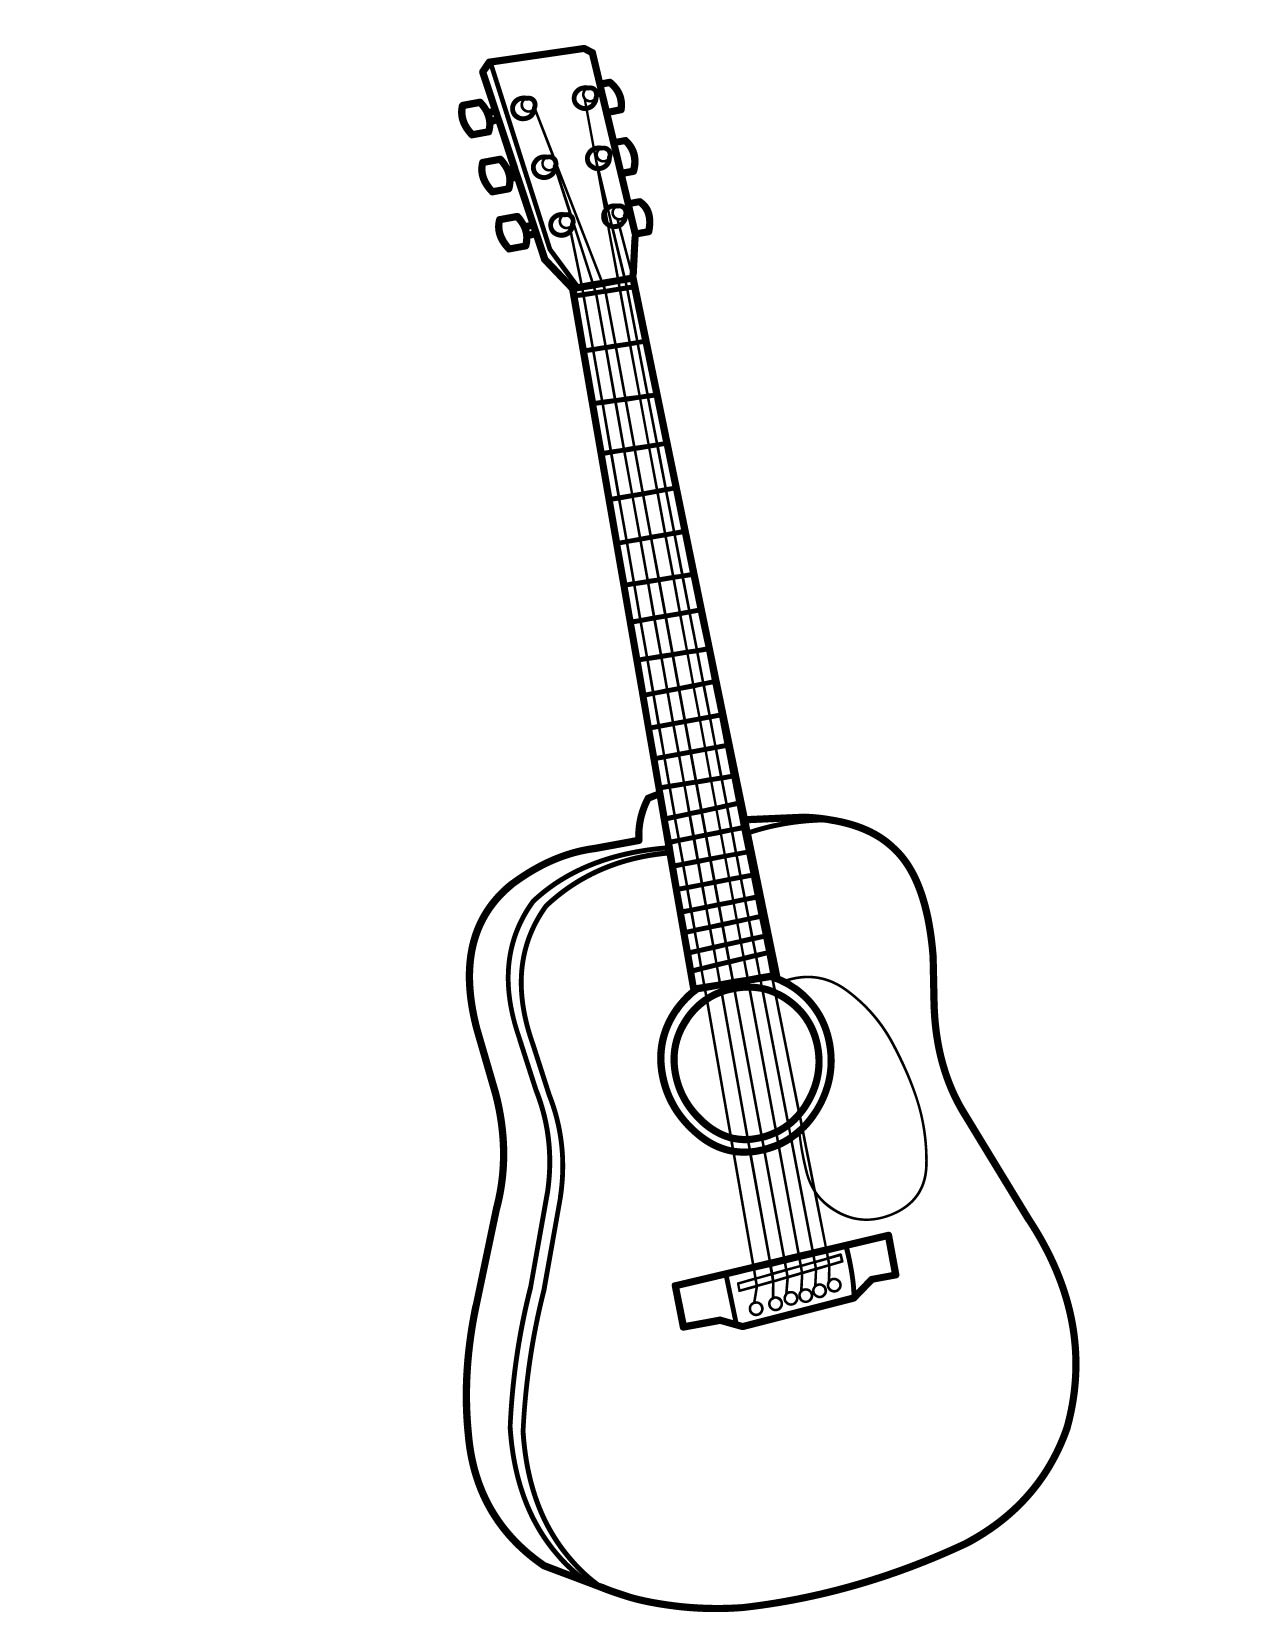 musical instruments coloring pagesmore pins like this one at